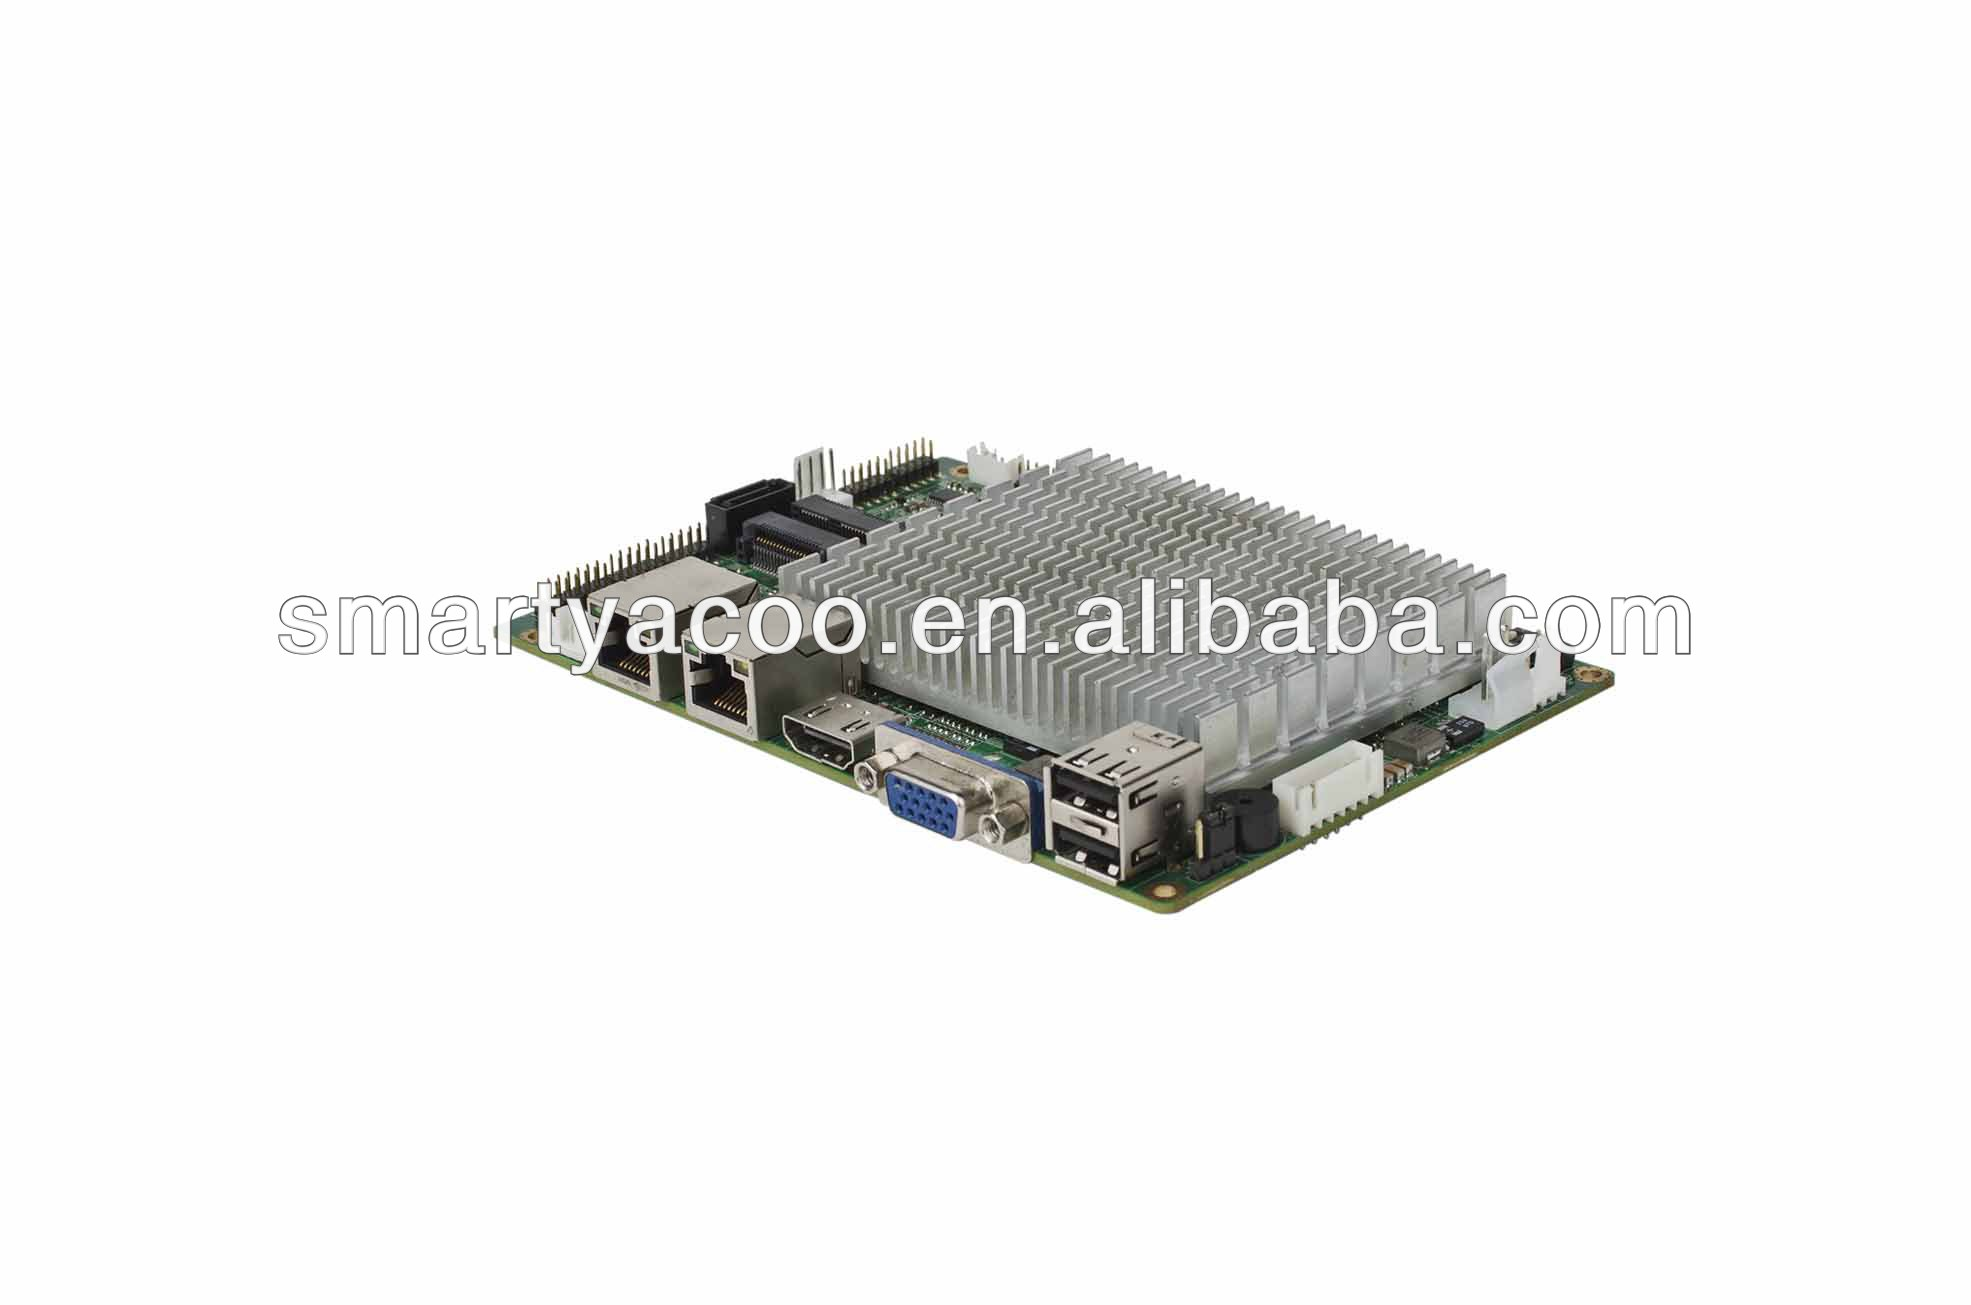 3.5 inch Intel Atom Cedar Trail N2600/2800 CPU Fanless Embedded Industrial Motherboard ENC-5891